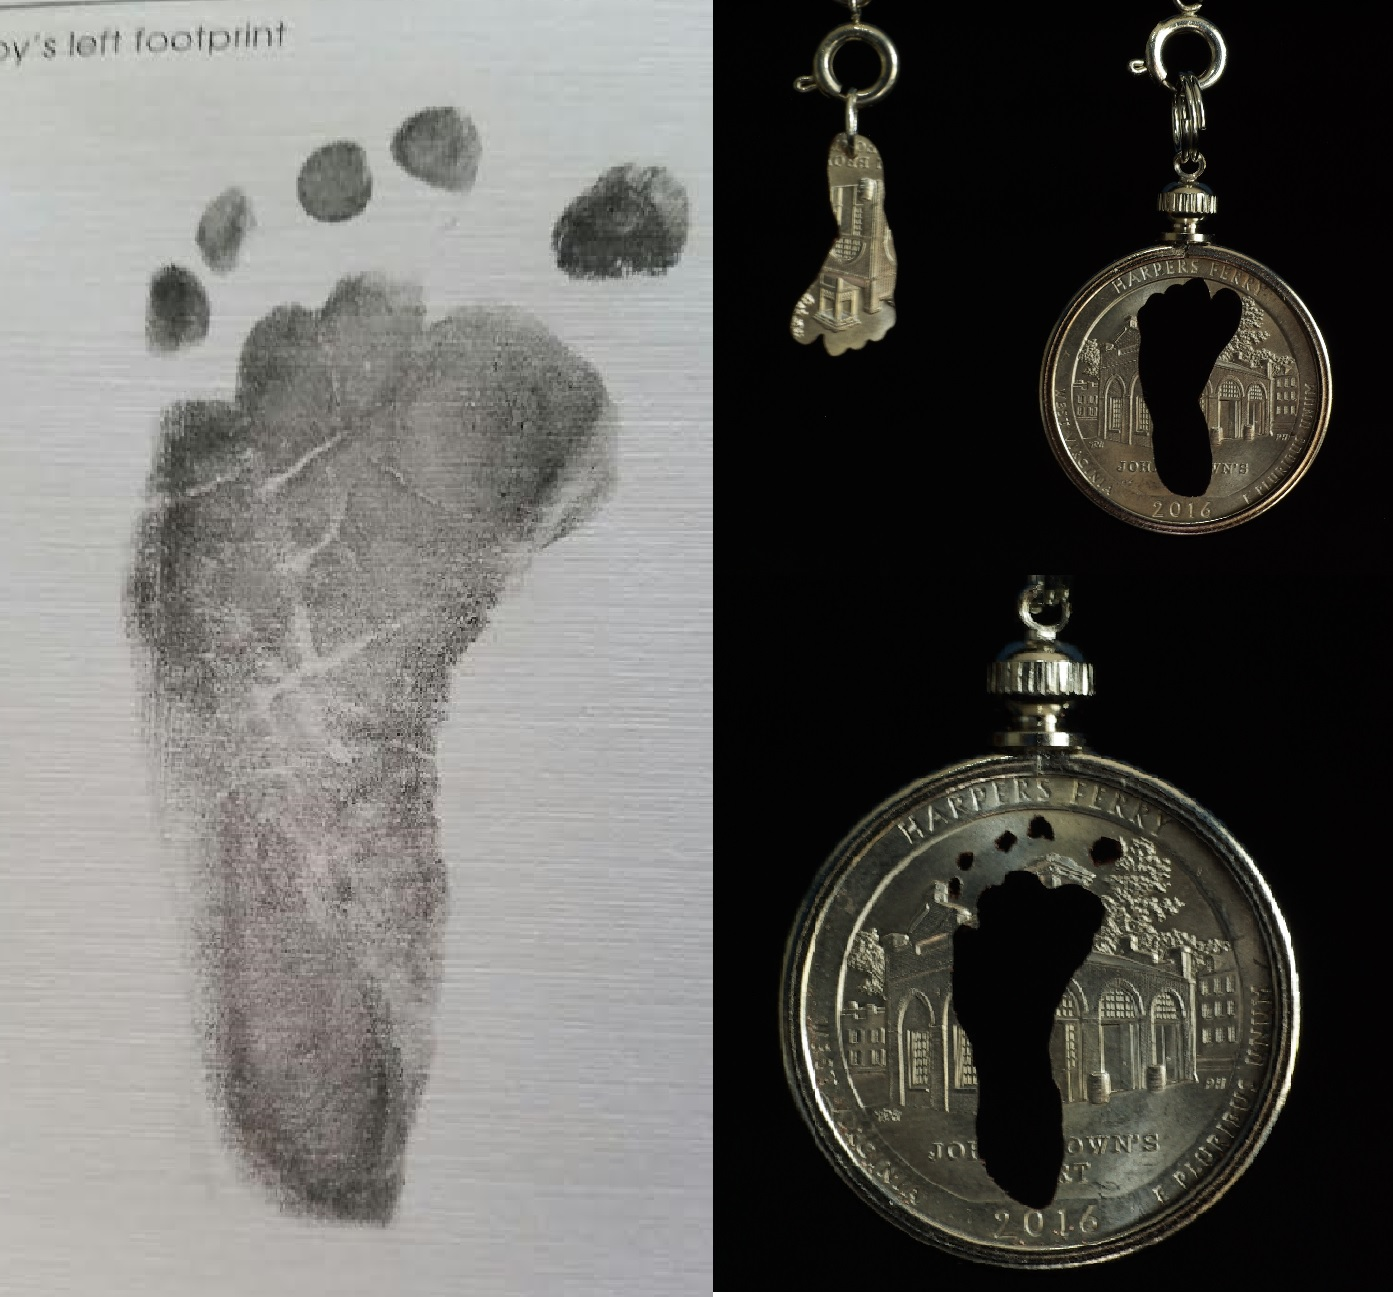 footprint - Kallie's foot